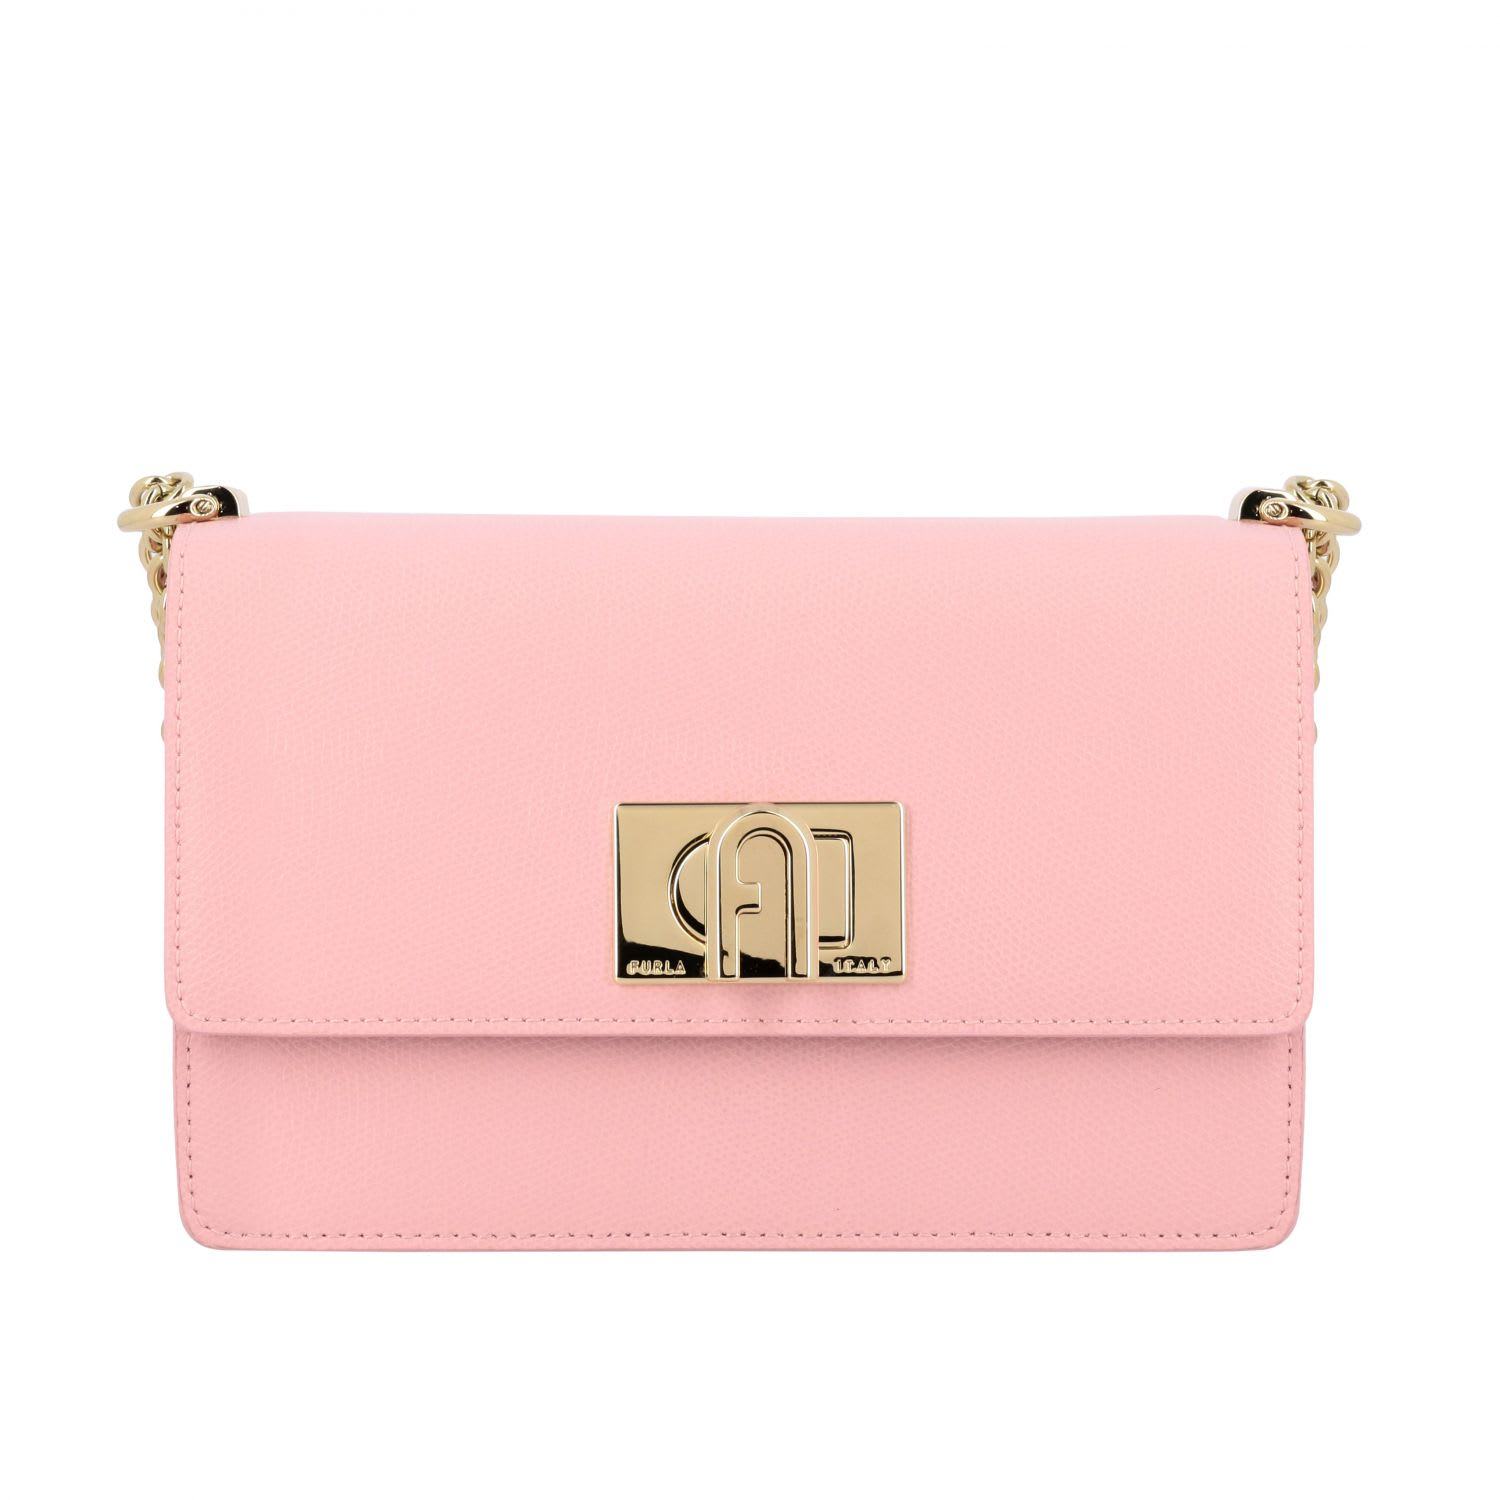 Furla Leather Bag In Baby Pink